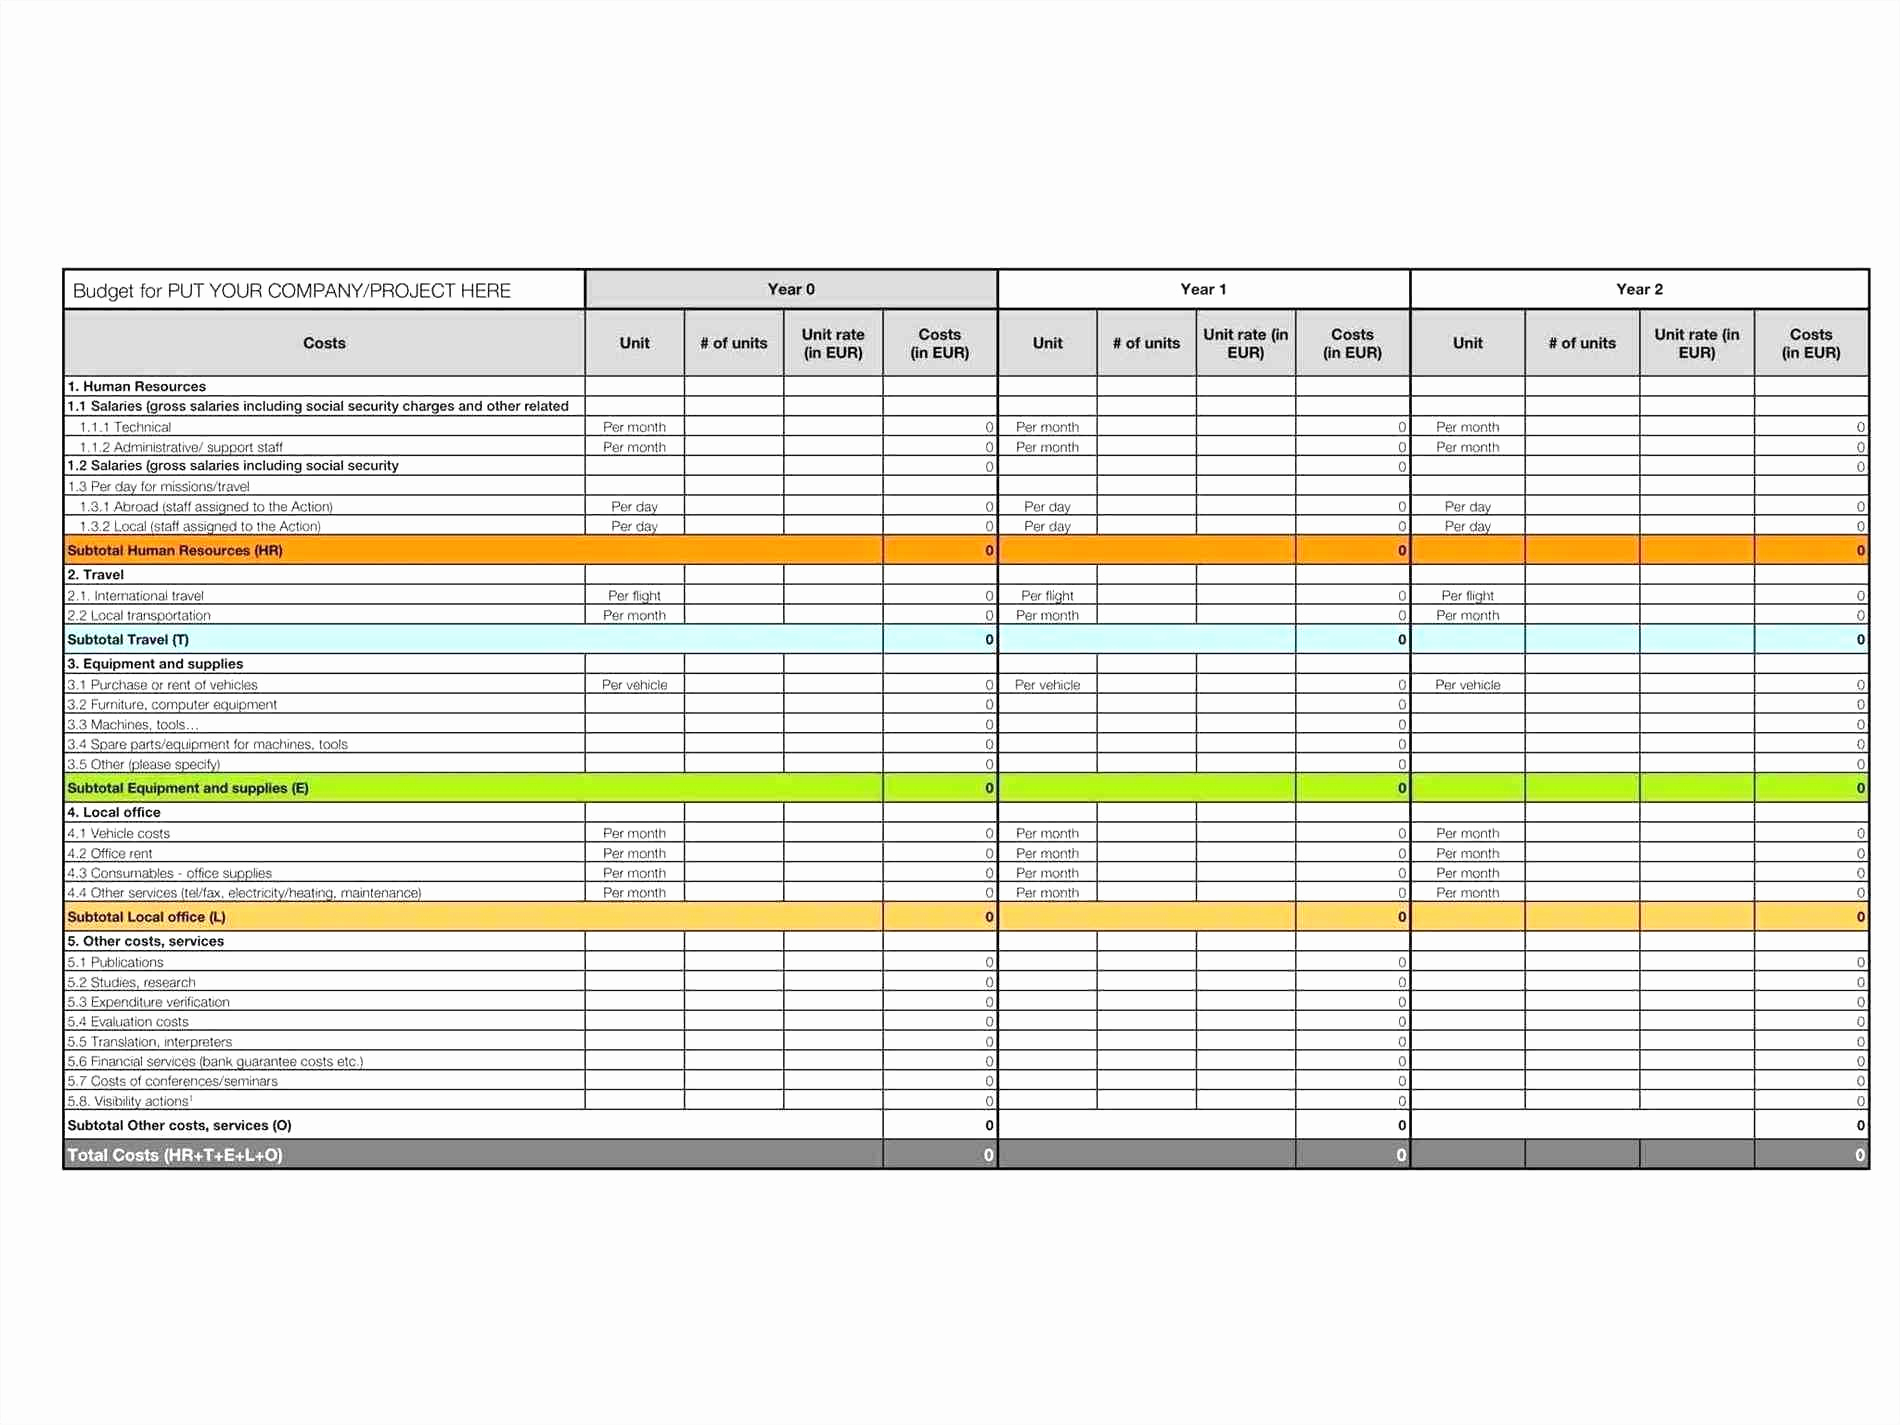 Probate Accounting Template Excel Inspirational Probate Accounting Template Excel Awesome Small Estate